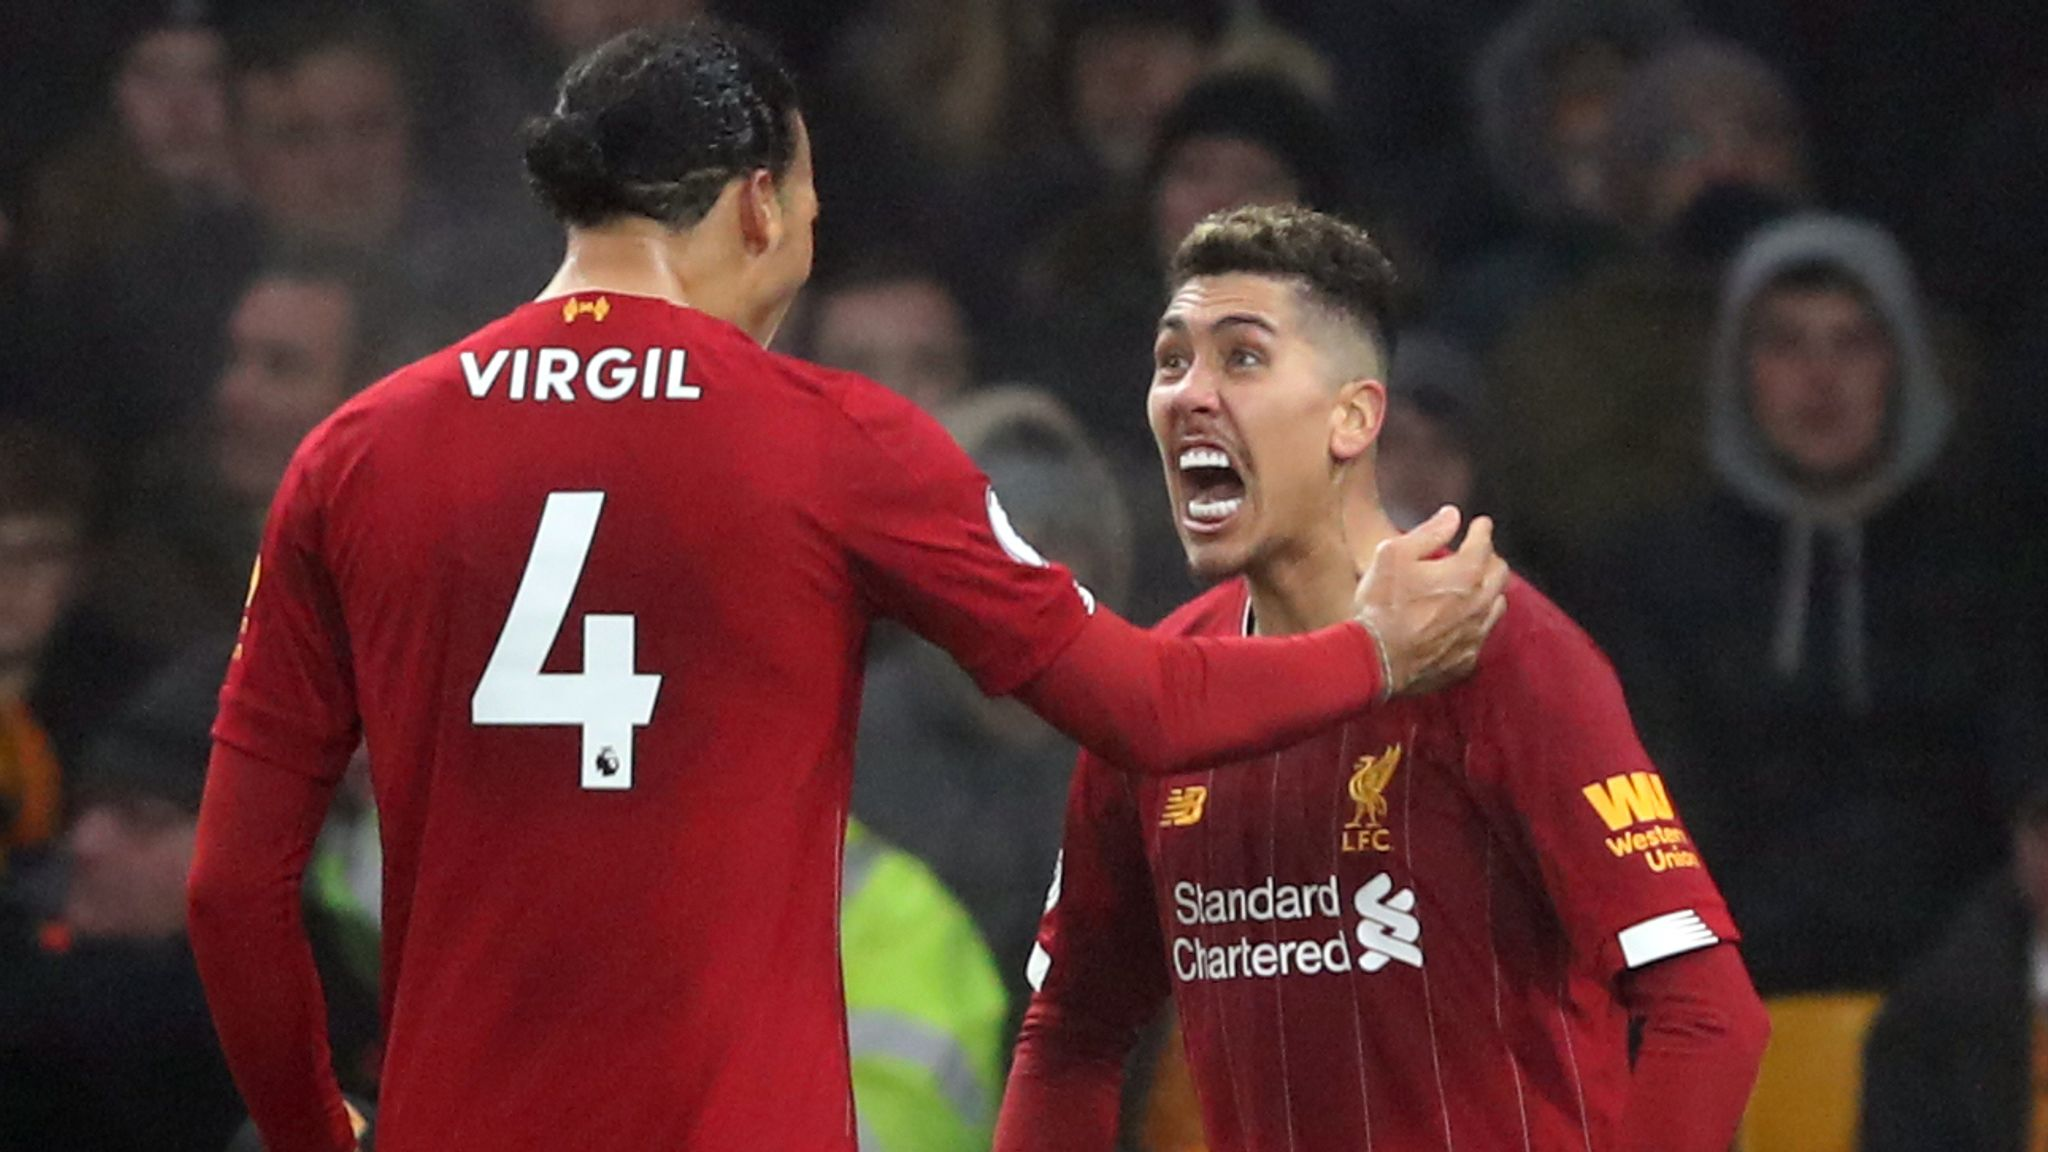 Wolves 1 2 Liverpool Late Roberto Firmino Goal Continues Reds Remarkable Run Football News Sky Sports Uefa champions league group d. wolves 1 2 liverpool late roberto